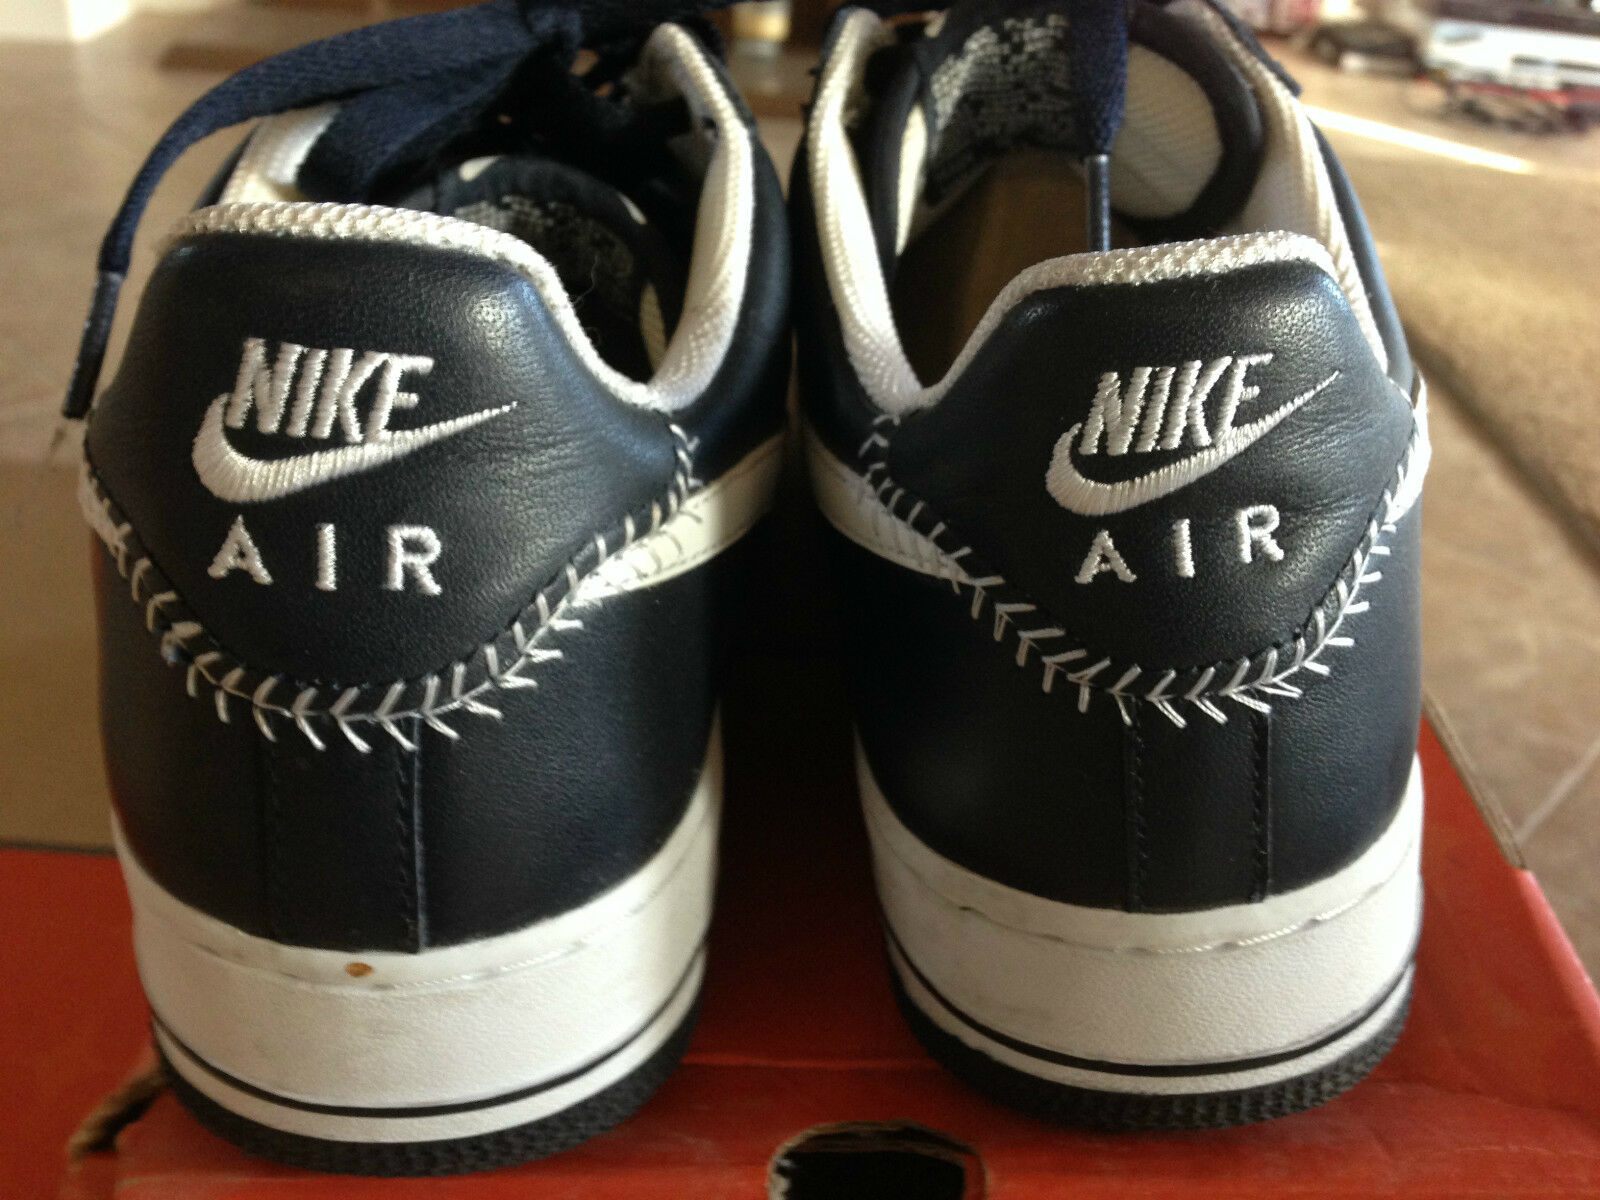 NIKE AIR FORCE 1 2006 OBSIDIAN/ WHITE BASEBALL ORIGINALS Uomo SIZE 9.5 FREE SHIP